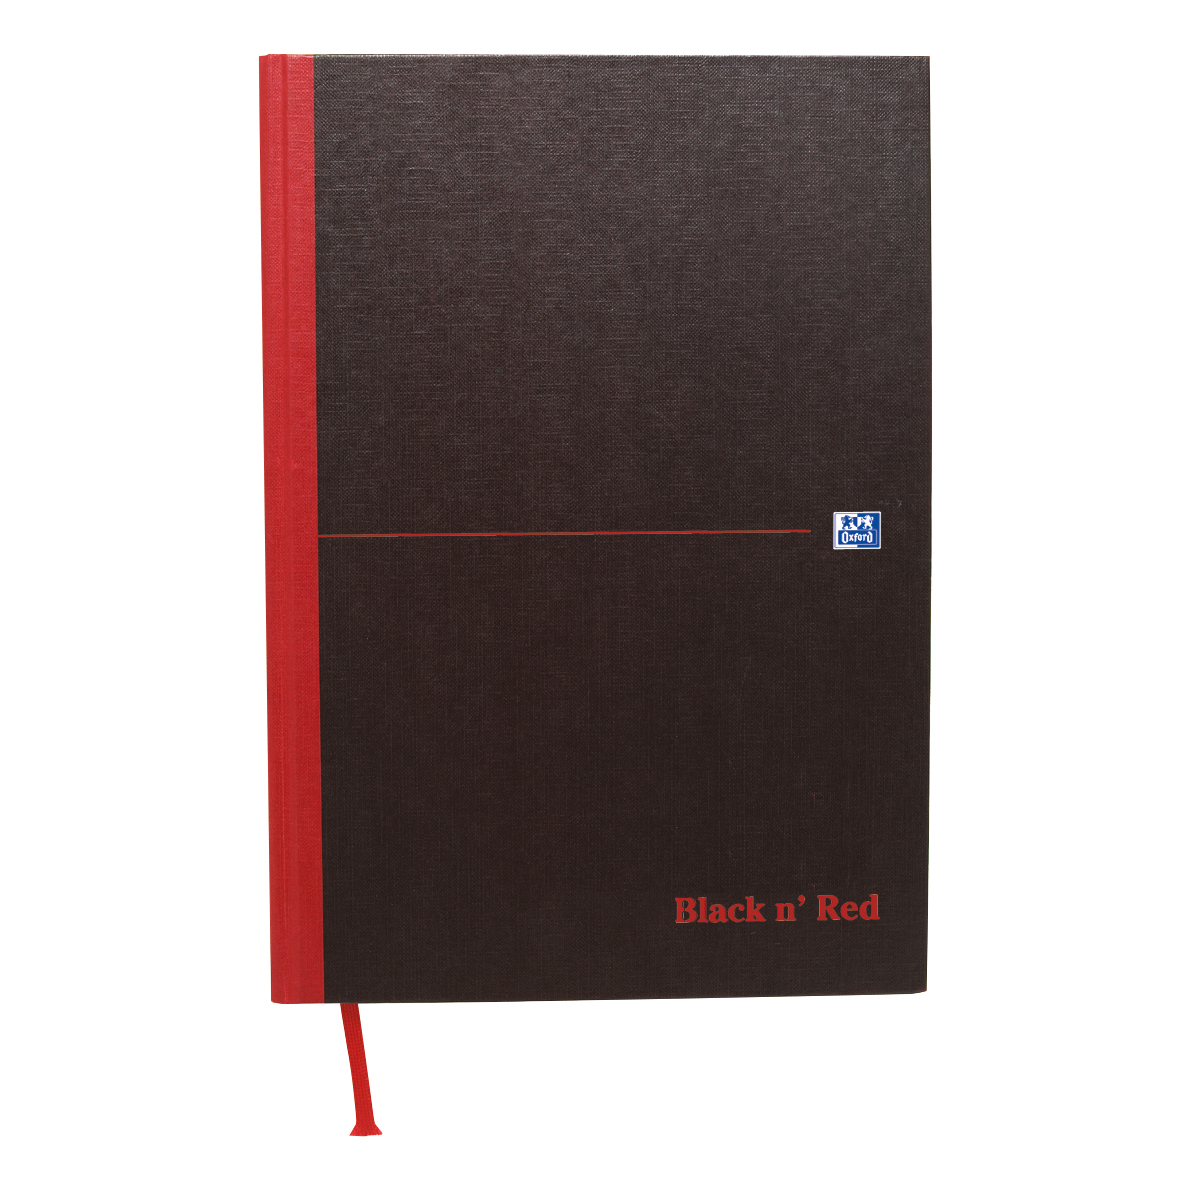 Black n Red Notebook Casebound 90gsm Ruled Recycled 192pp A5 Ref 100080430 Pack 5